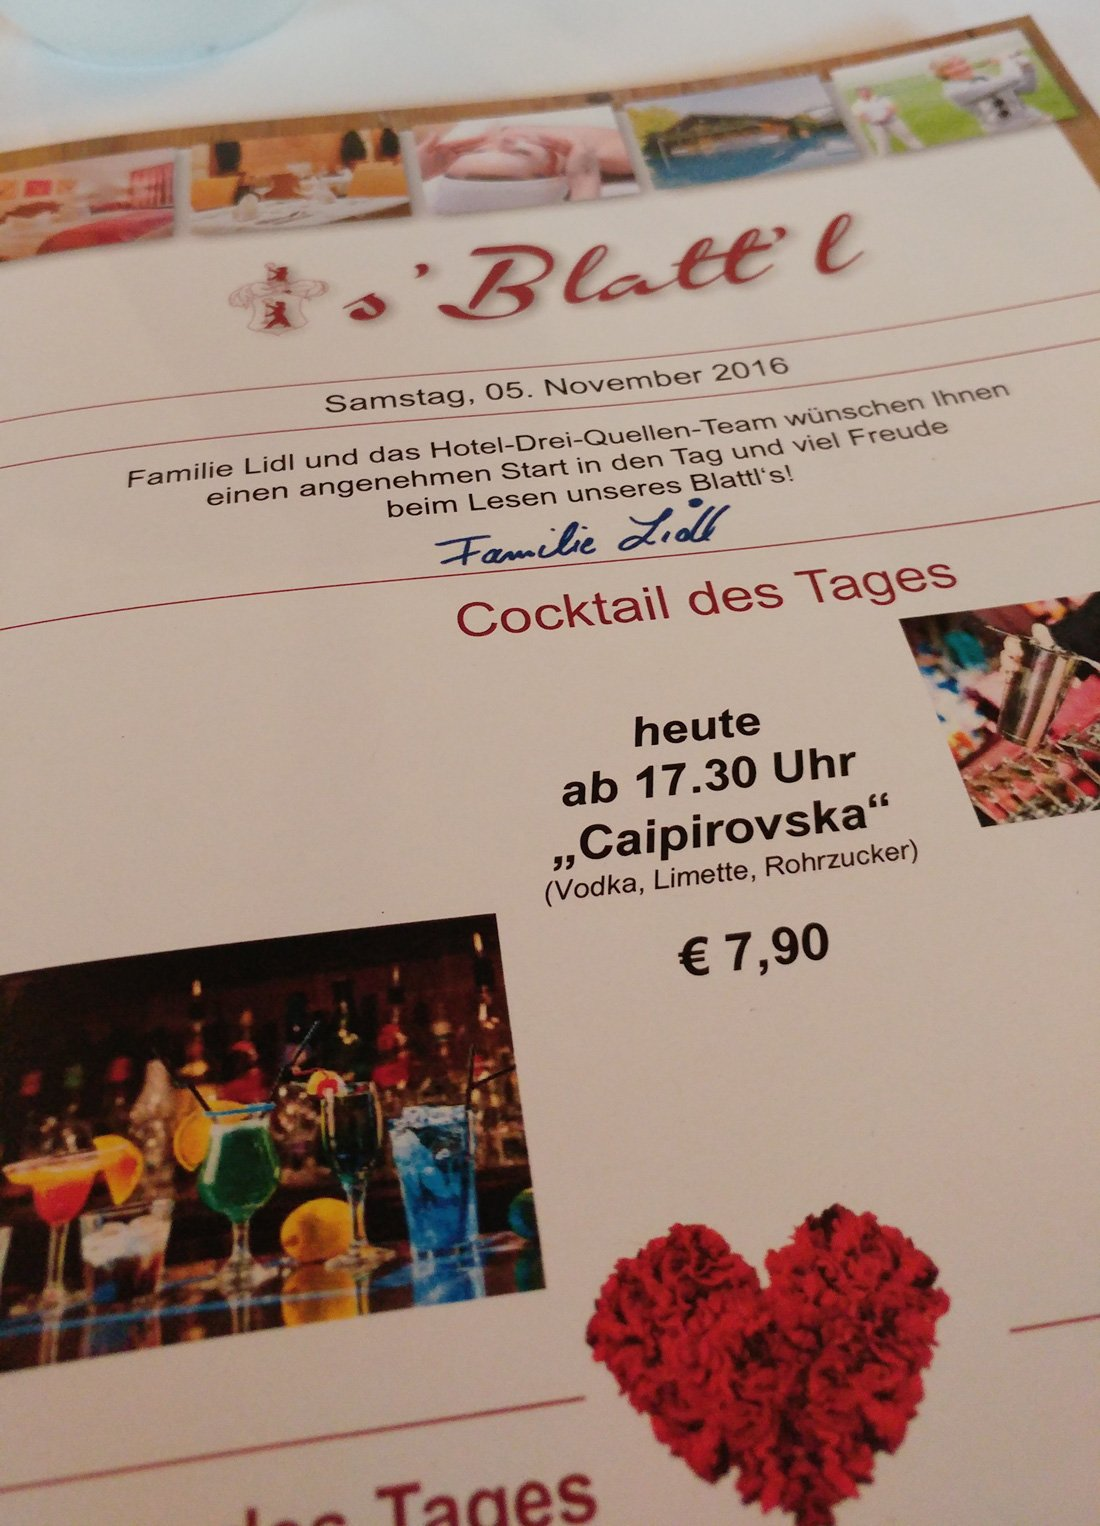 s'Blattl, Hotelzeitung, Hotel 3-Quellen-Therme, Bad Griesbach, Wellness, Beauty, Conny Doll Lifestyle